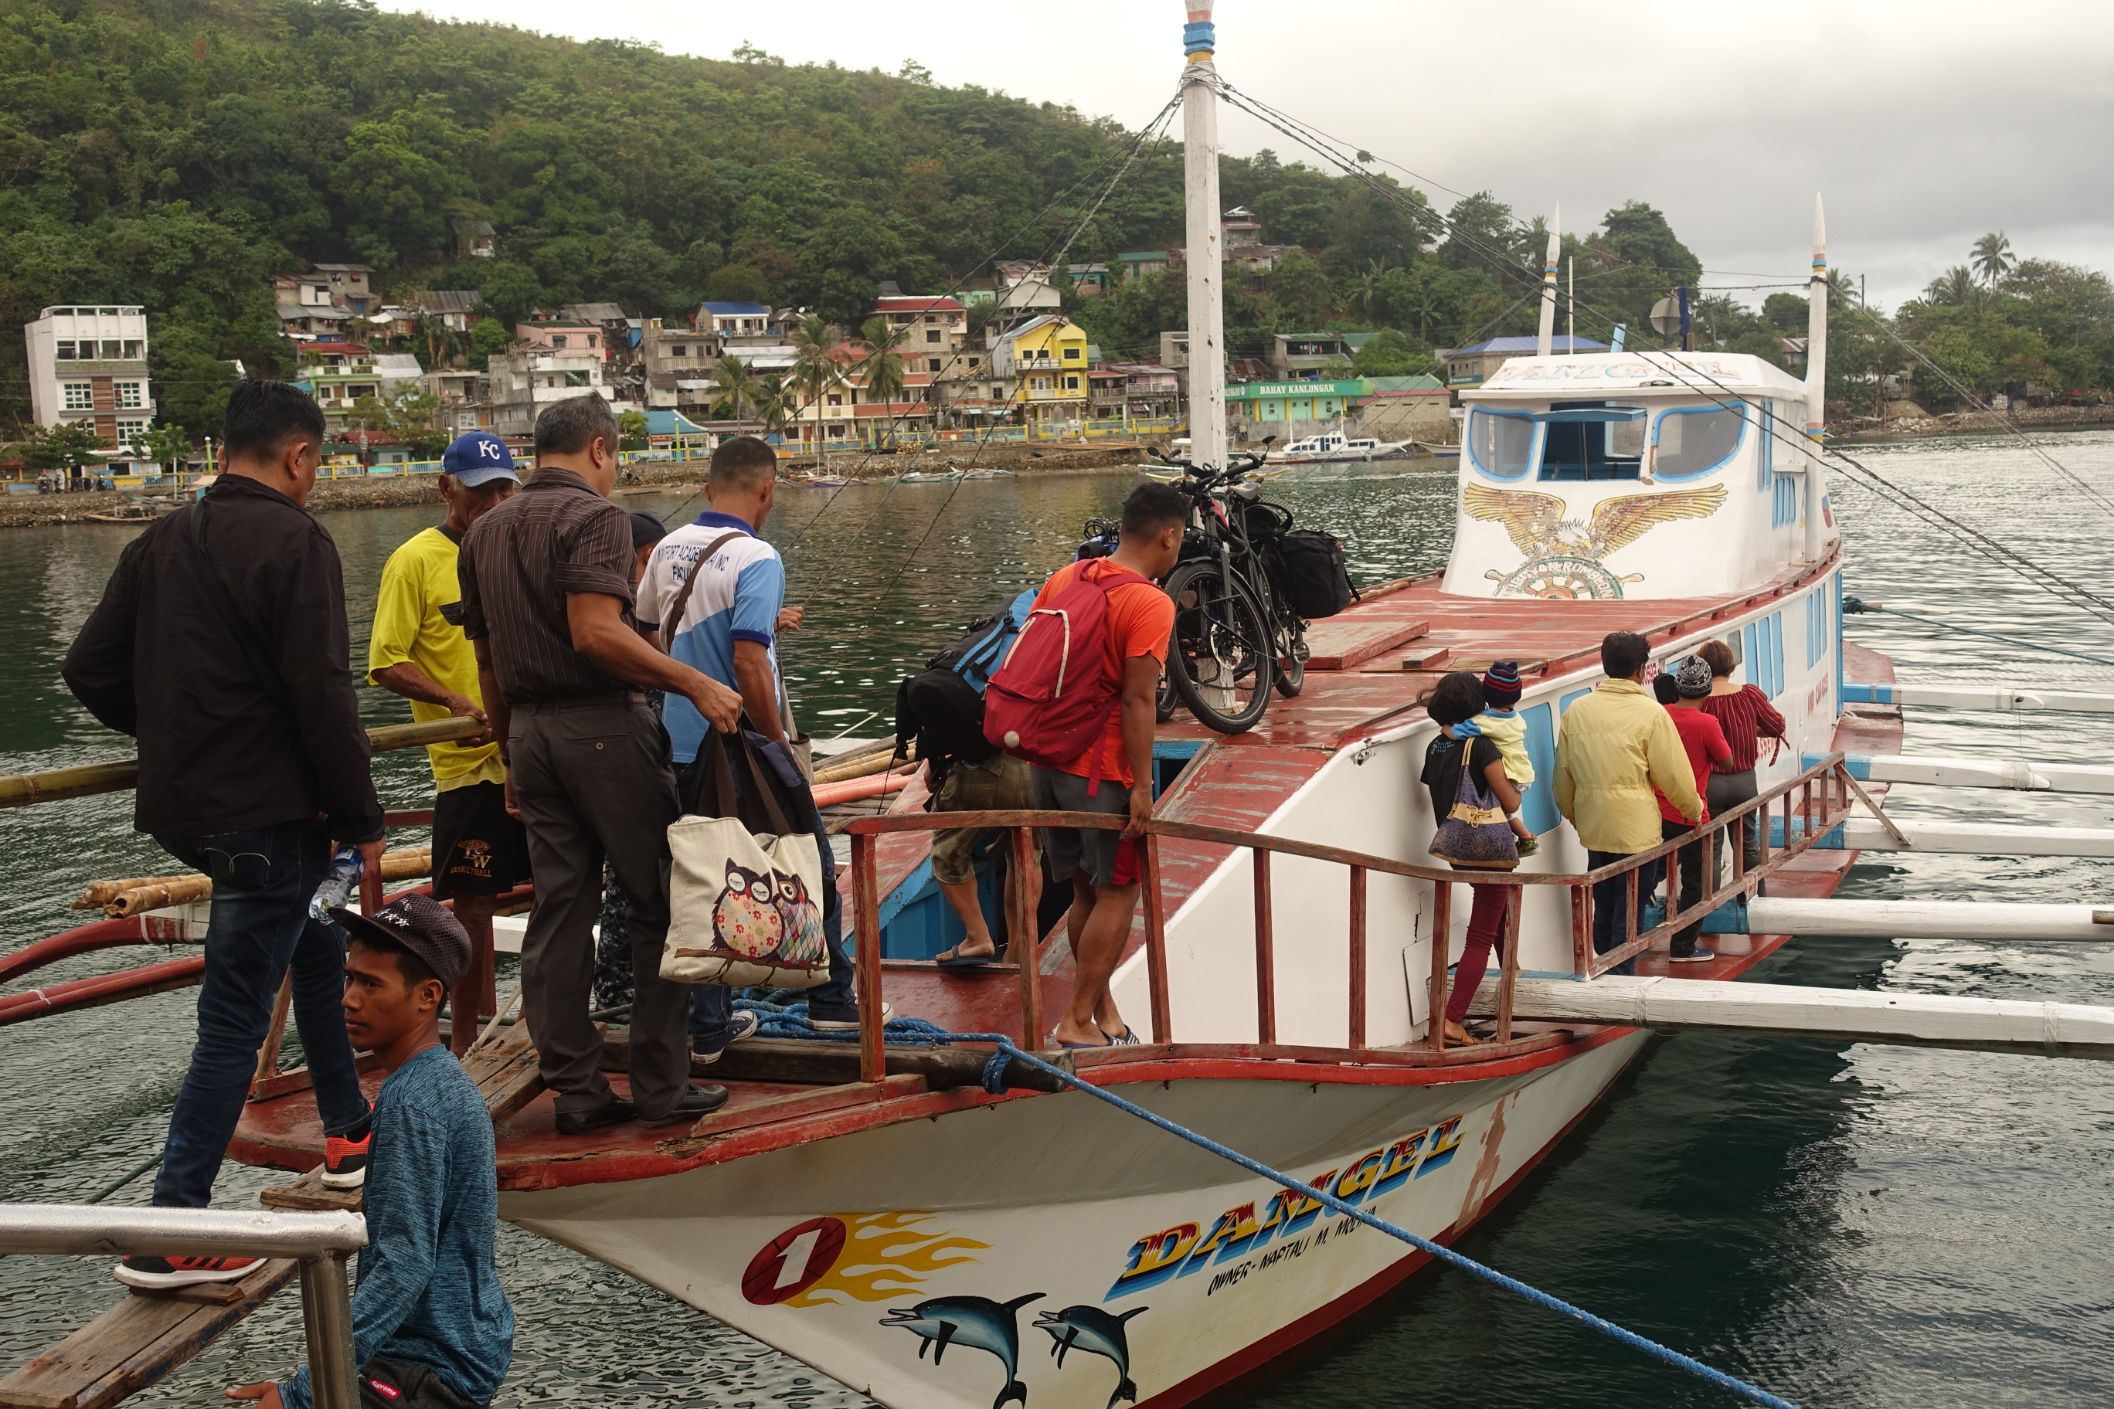 Many different boat styles make travel interesting. The man in the yellow T-shirt is one end of the hand-rail!